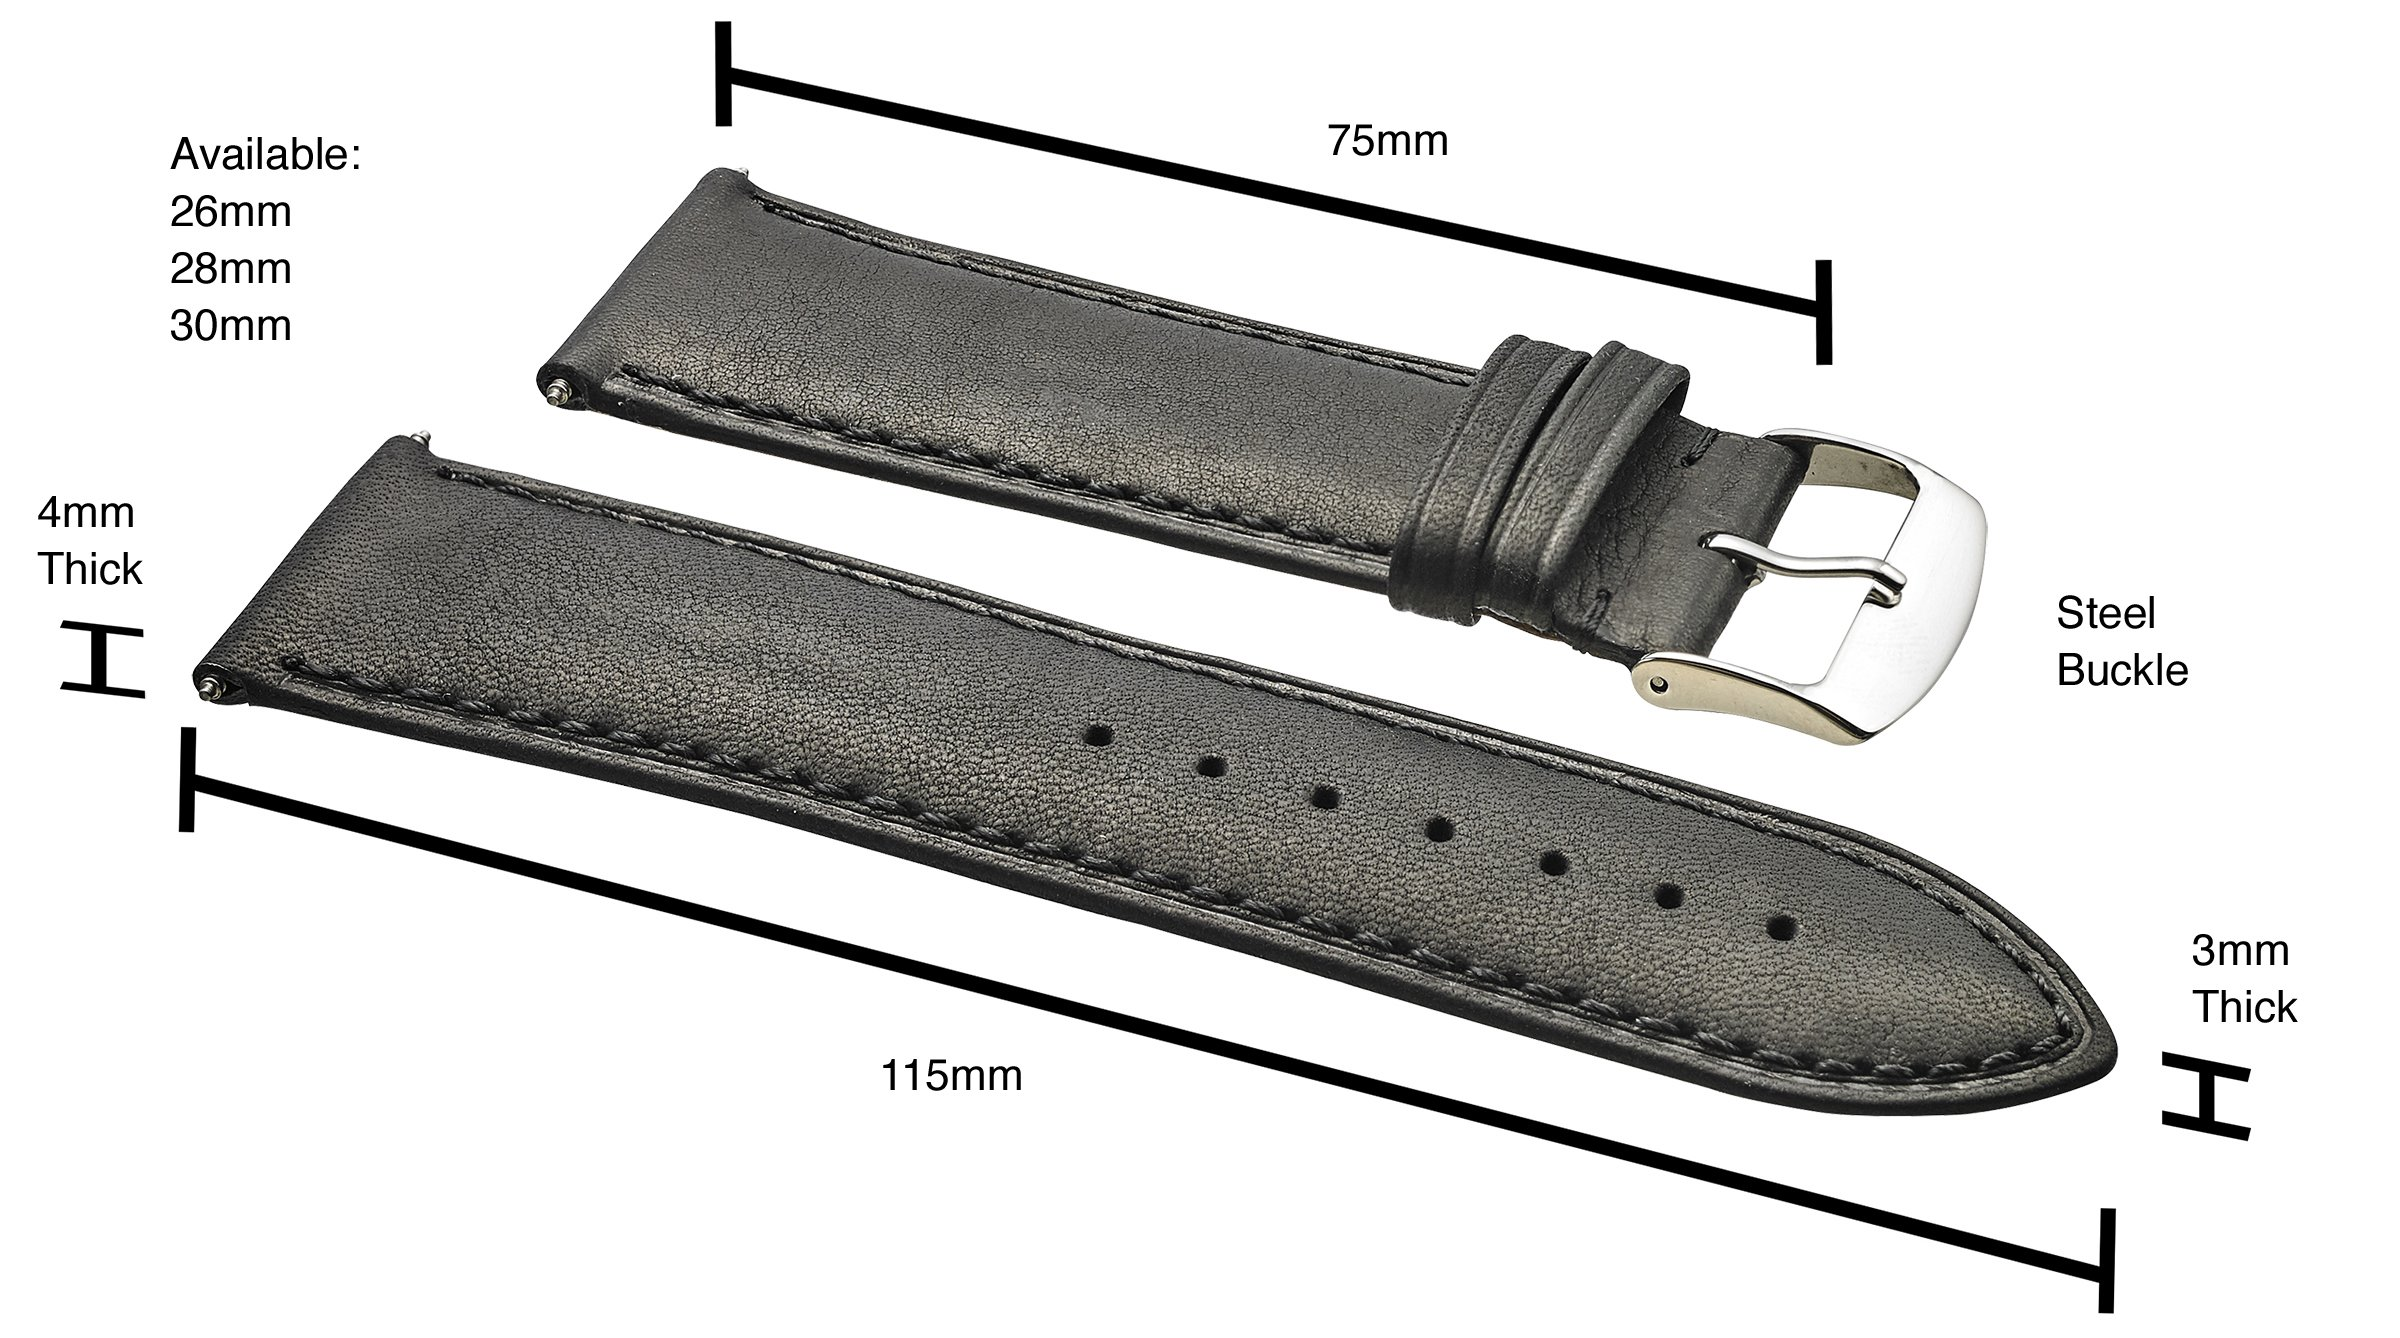 Genuine Leather Watch Band (fits Wrist Sizes 6-7 1/2 inch)- Black - 30mm by STUNNING SELECTION (Image #1)